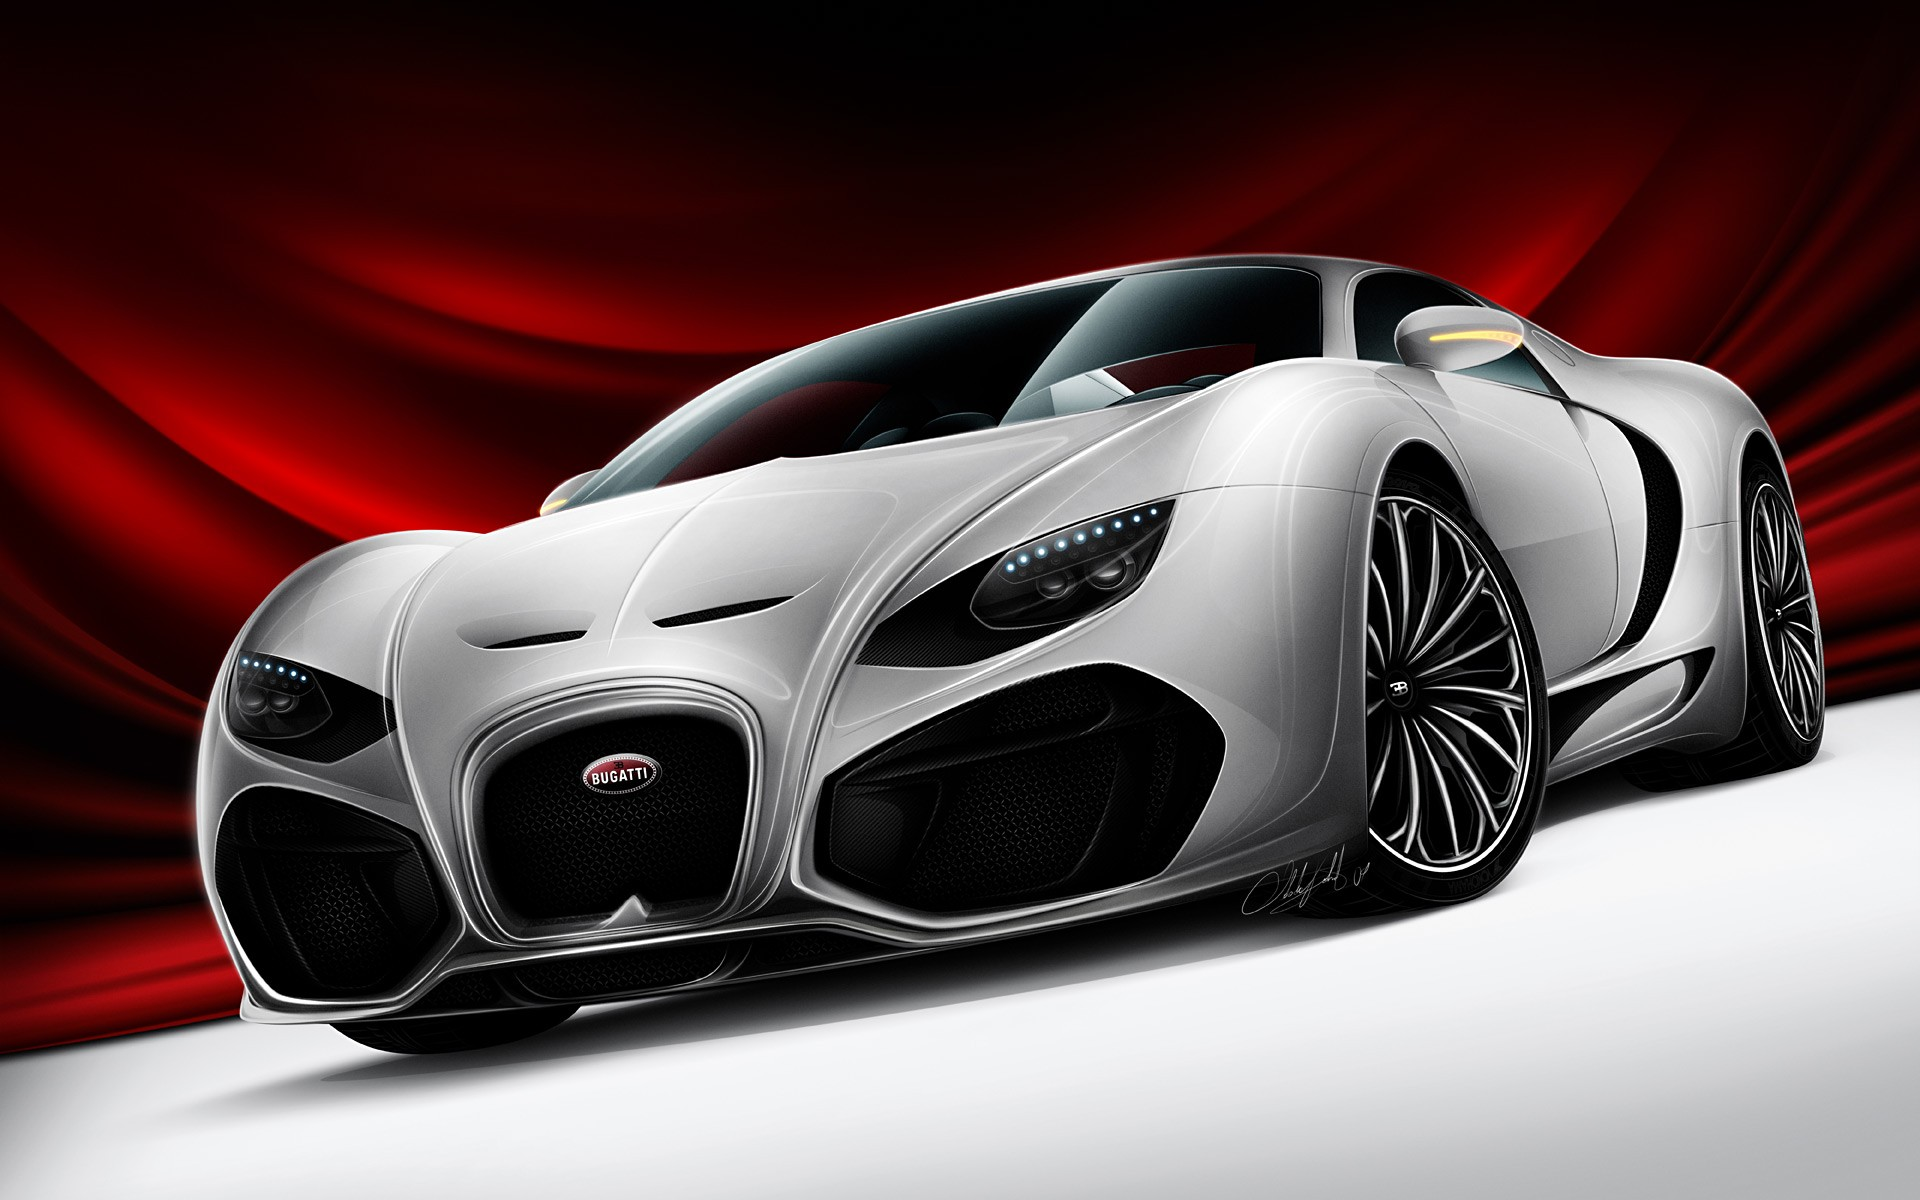 xi464 cool exotic car wallpapers pictures in high - Cool Exotic Cars Wallpaper